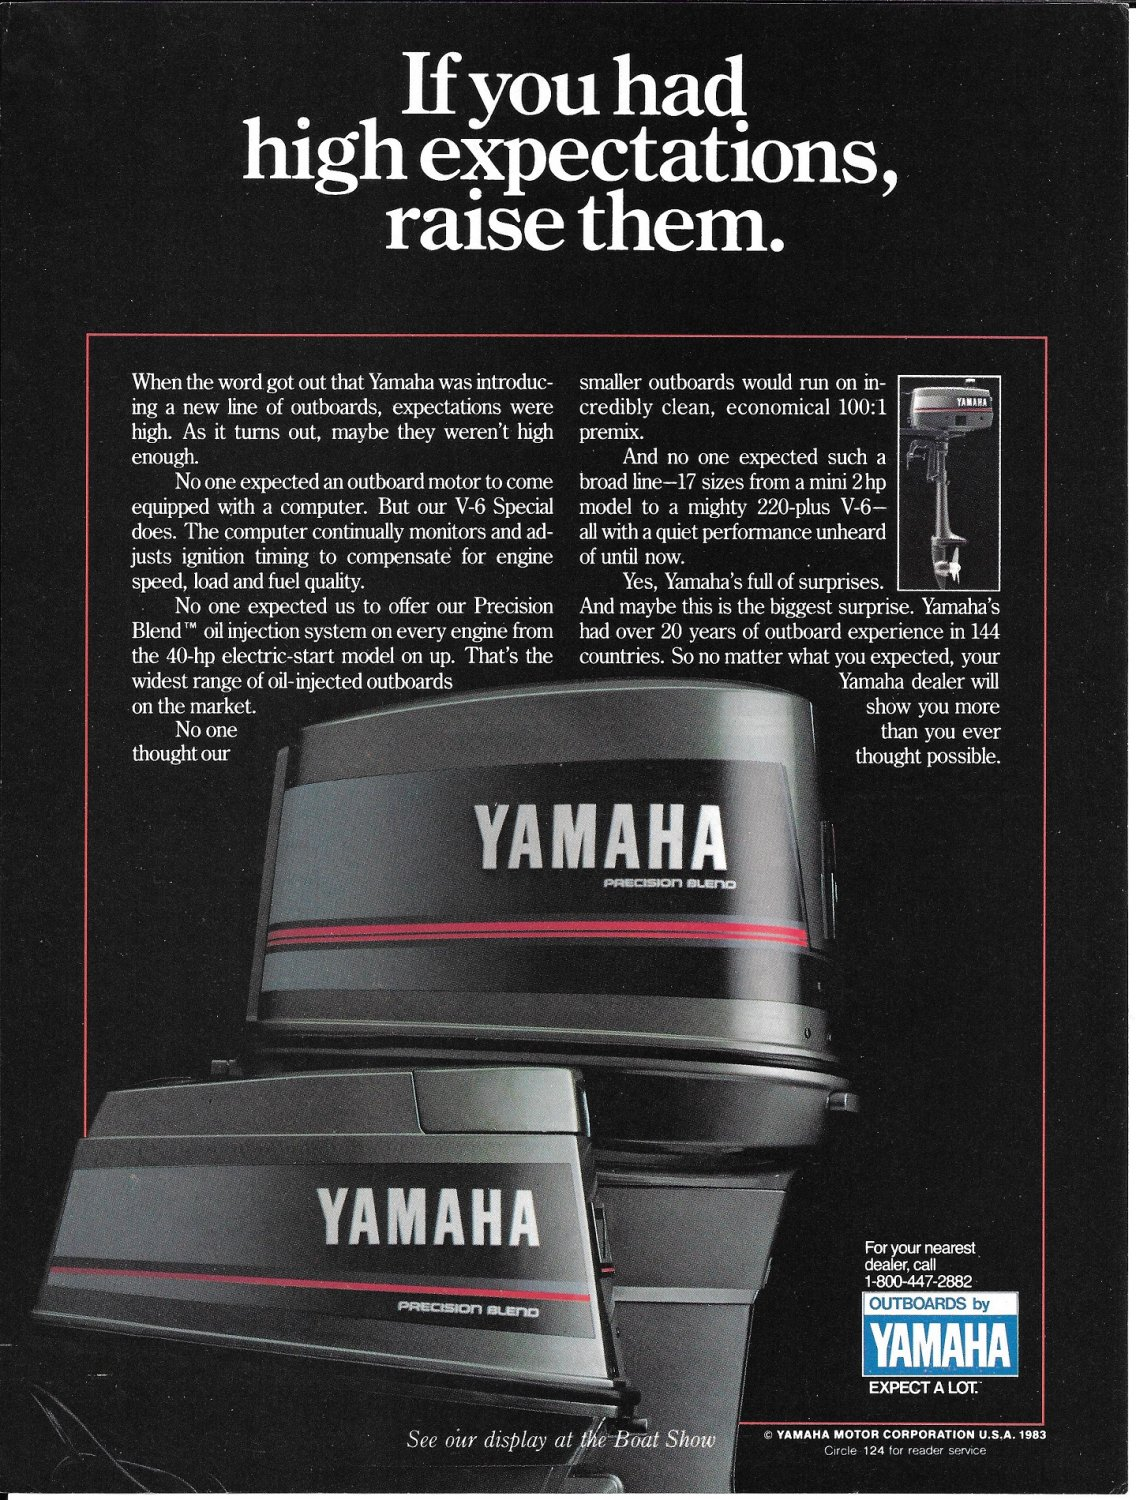 1984 Yamaha Outboards Color Ad- The V-6 220 HP Outboard Motor